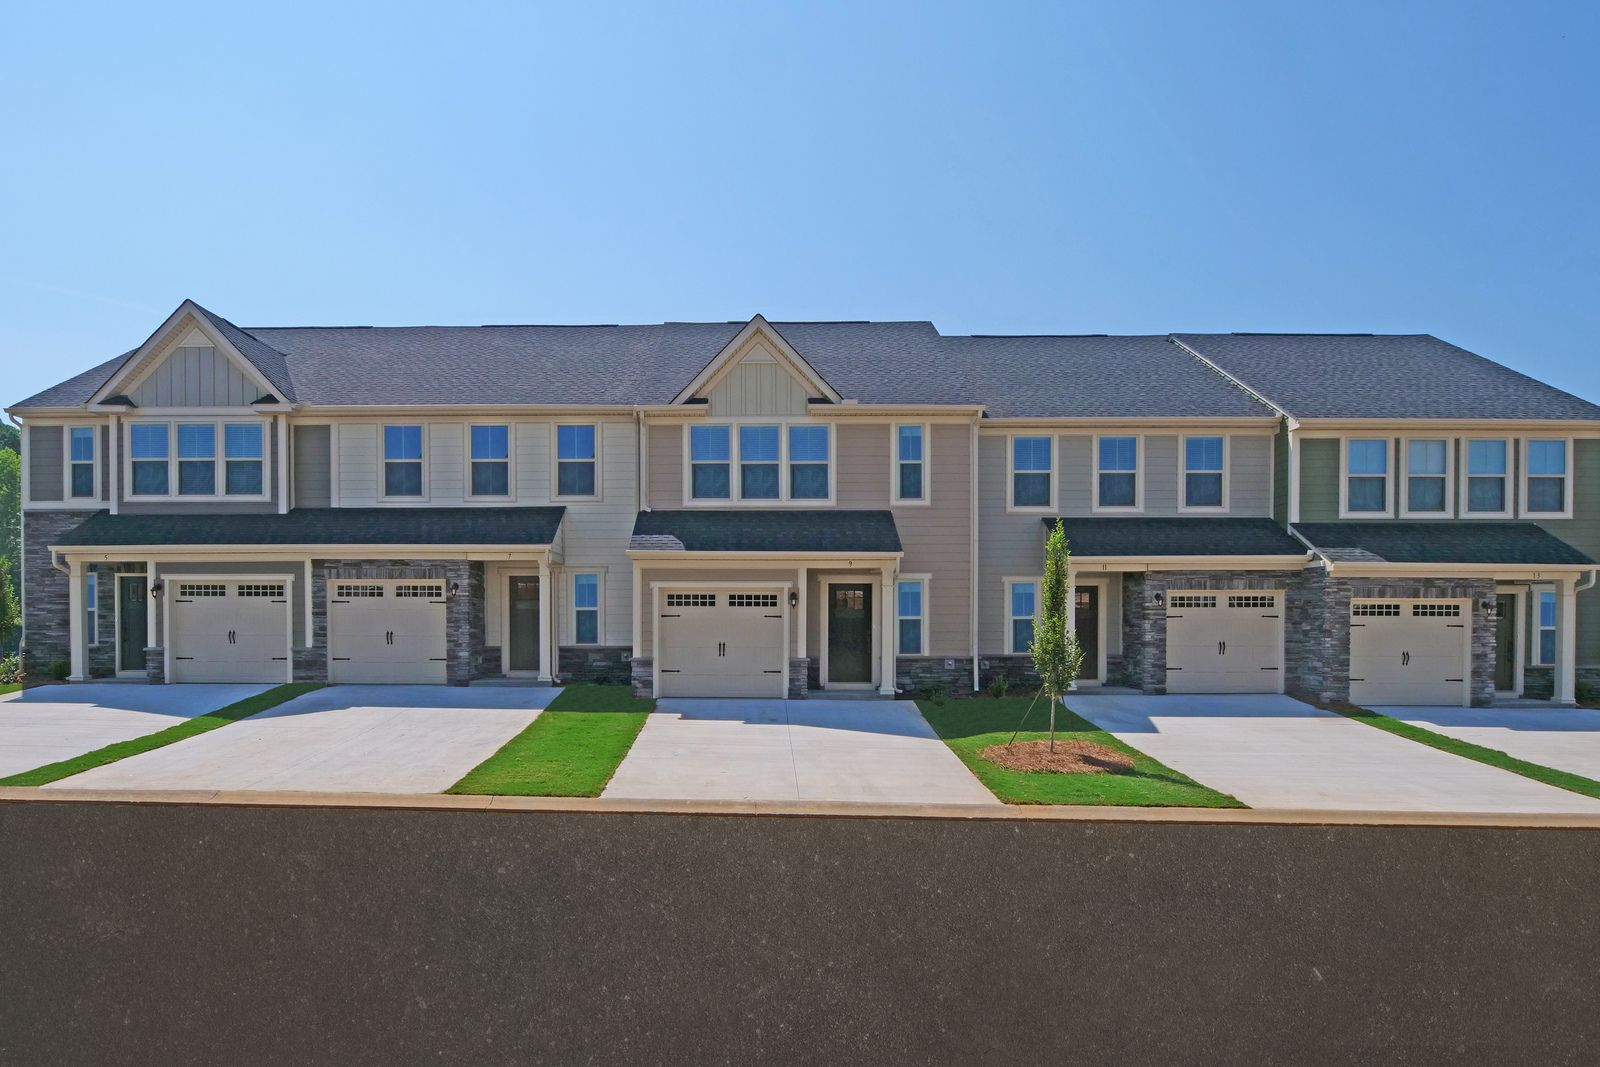 Why rent when you can own for the same? From the $250s-$300s:Own a new townhome with the amenities you've grown to love - pool, dog park, and firepit! Located off of Woodruff Road & 2 mins. to interstates. Schedule your visit to learn more!